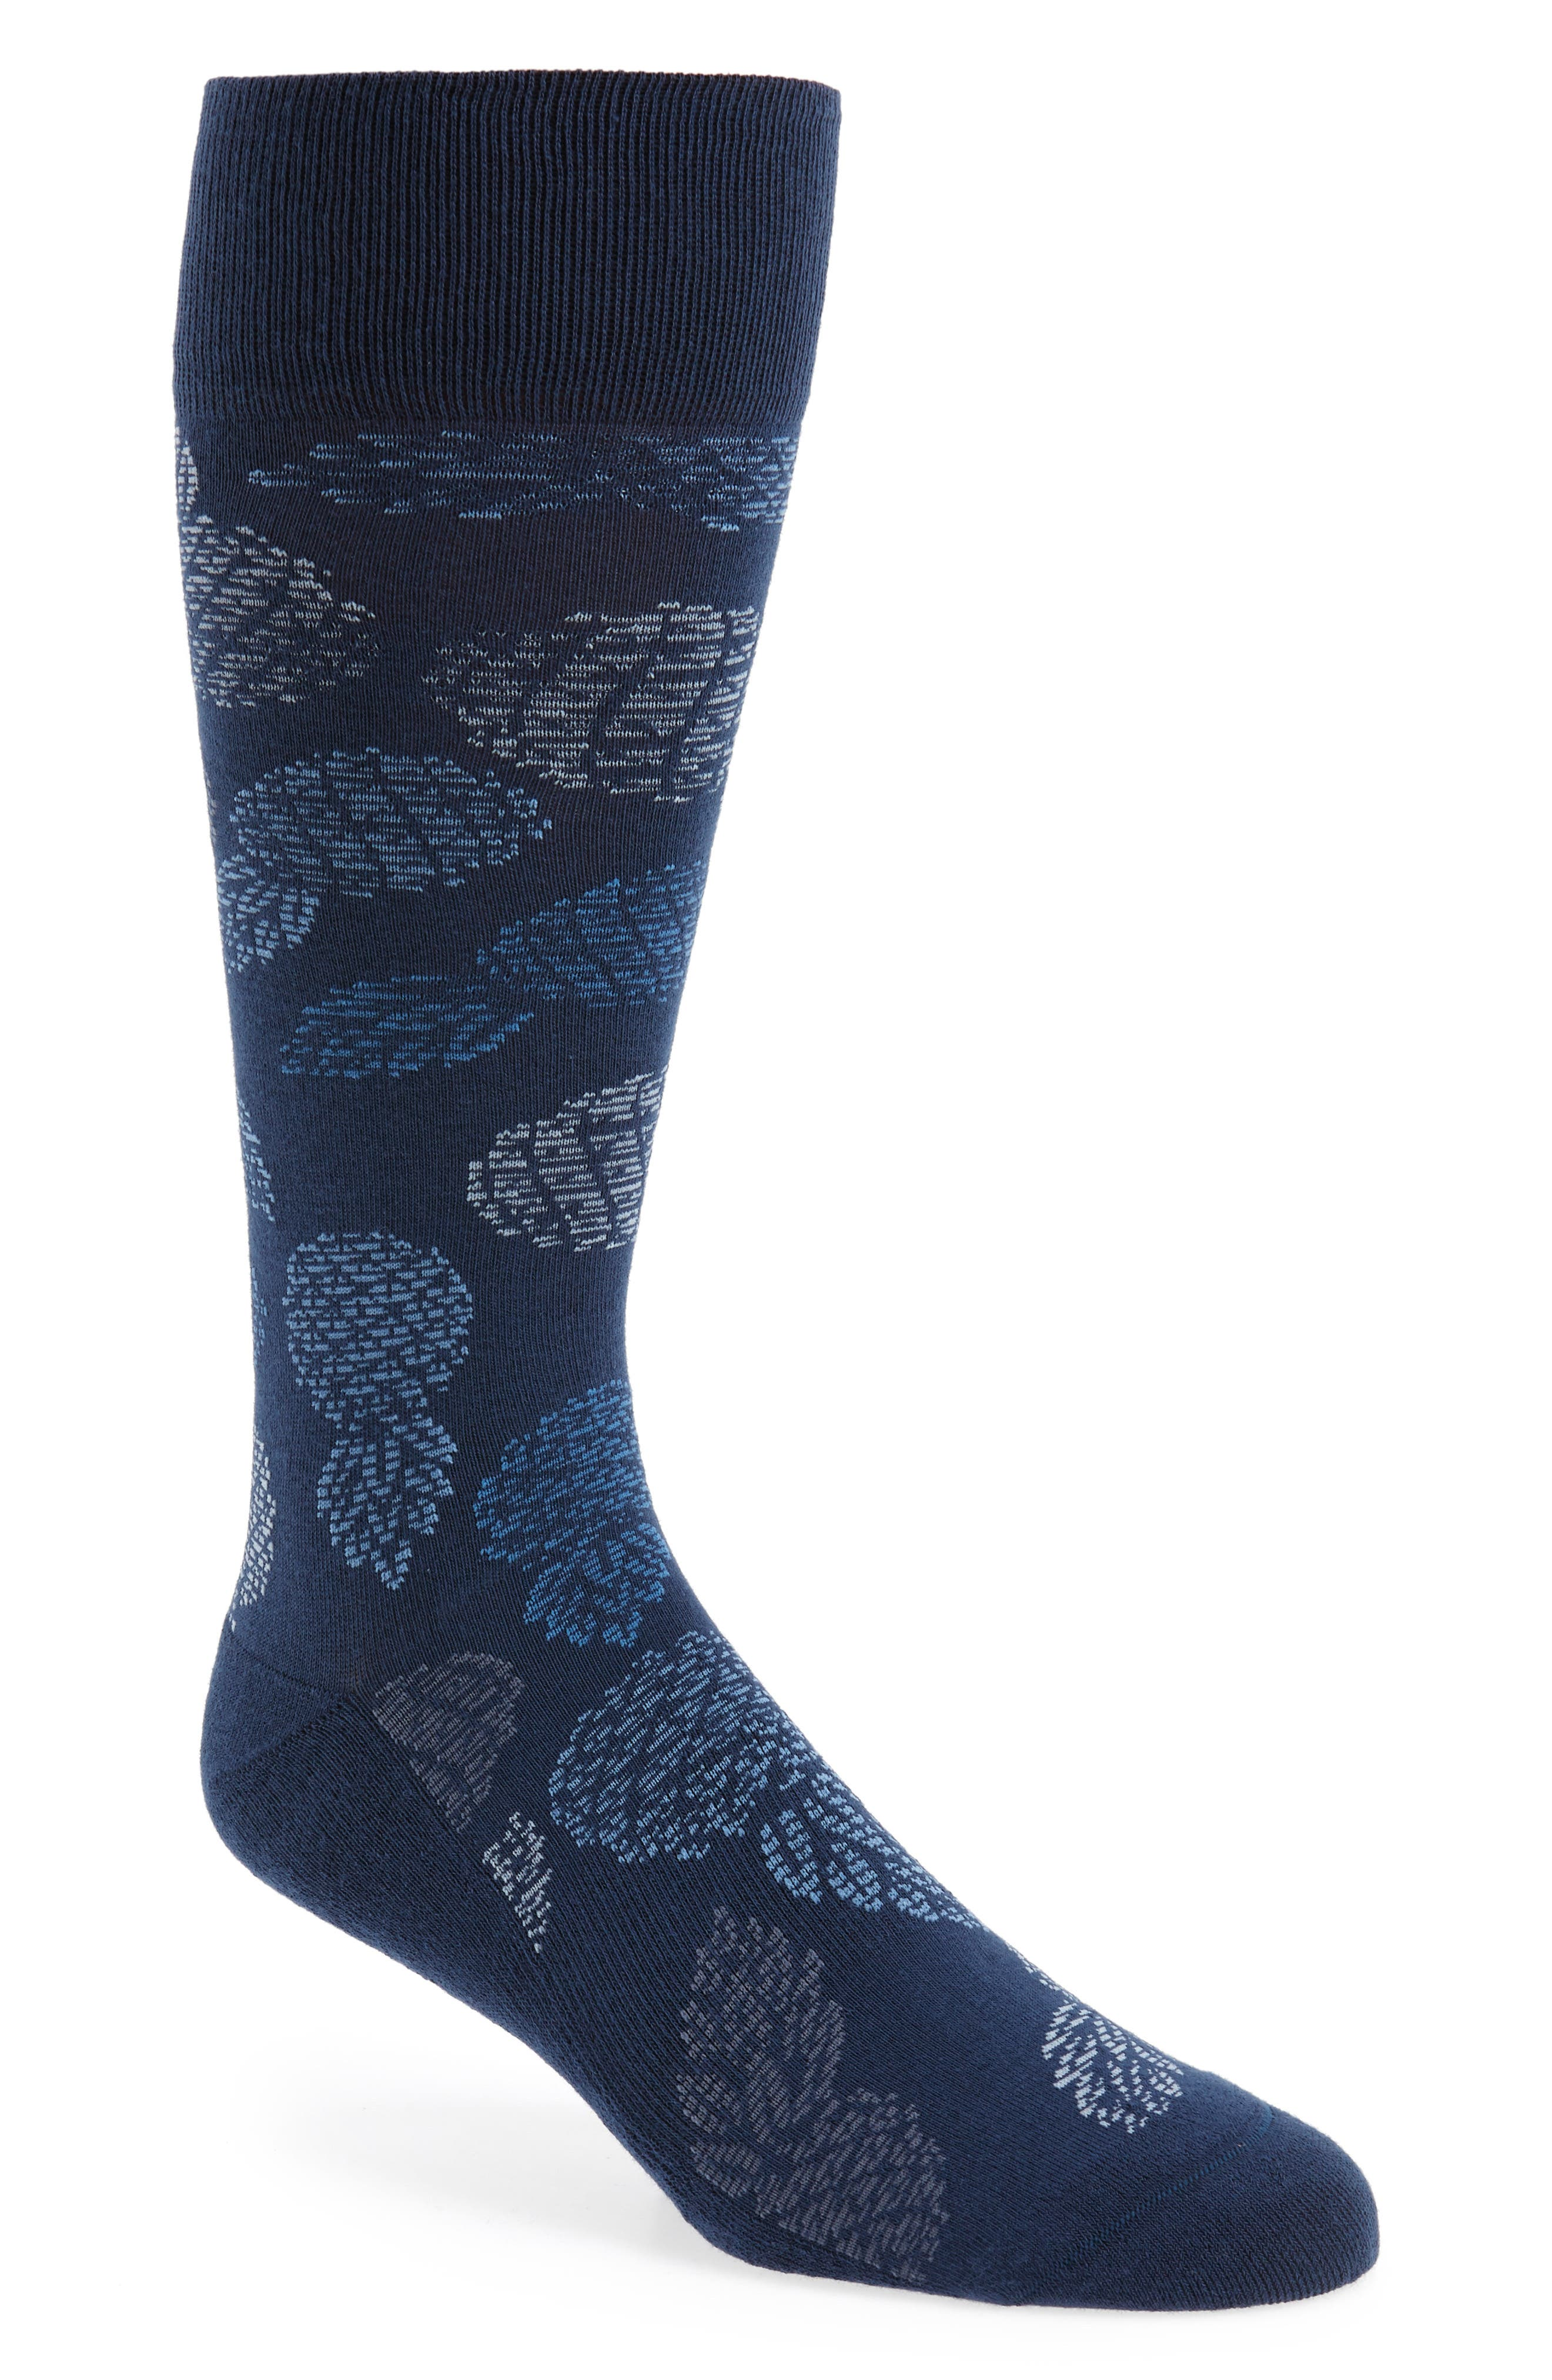 Pineapple Party Socks,                             Main thumbnail 1, color,                             Navy/ Blue